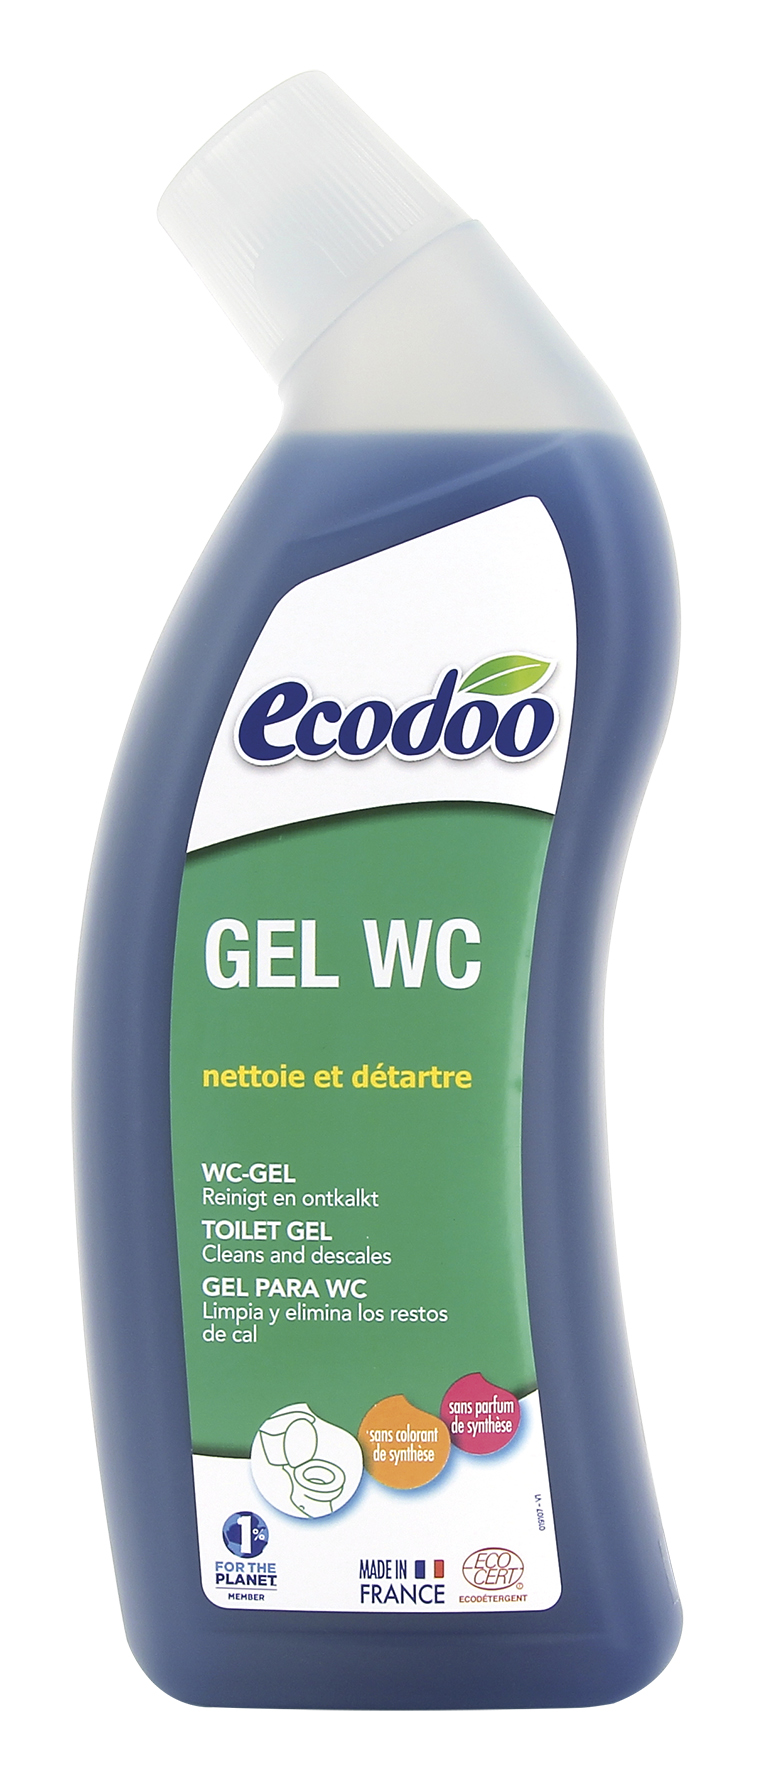 Gel WC, Ecodoo (750 ml)